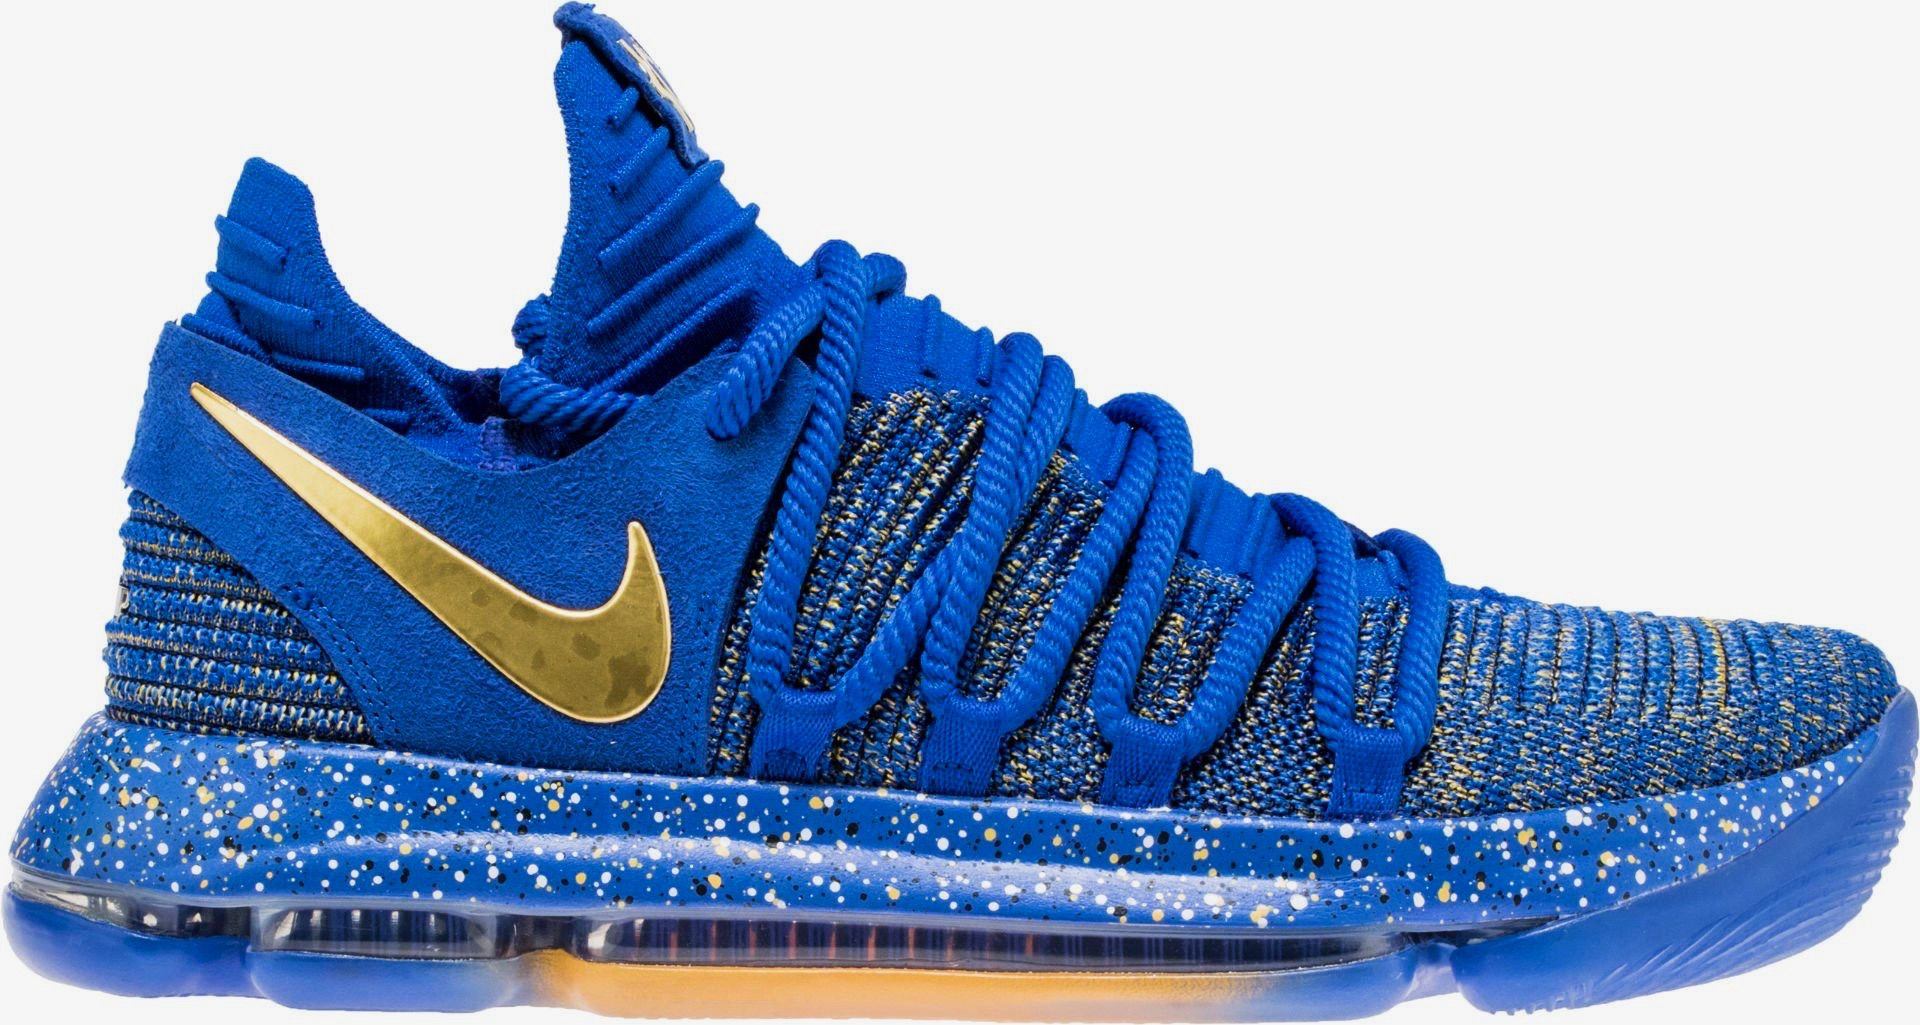 #Golden StateWarriors All-Star #KevinDurant introduces his Nike KD 10  Finals shoes.